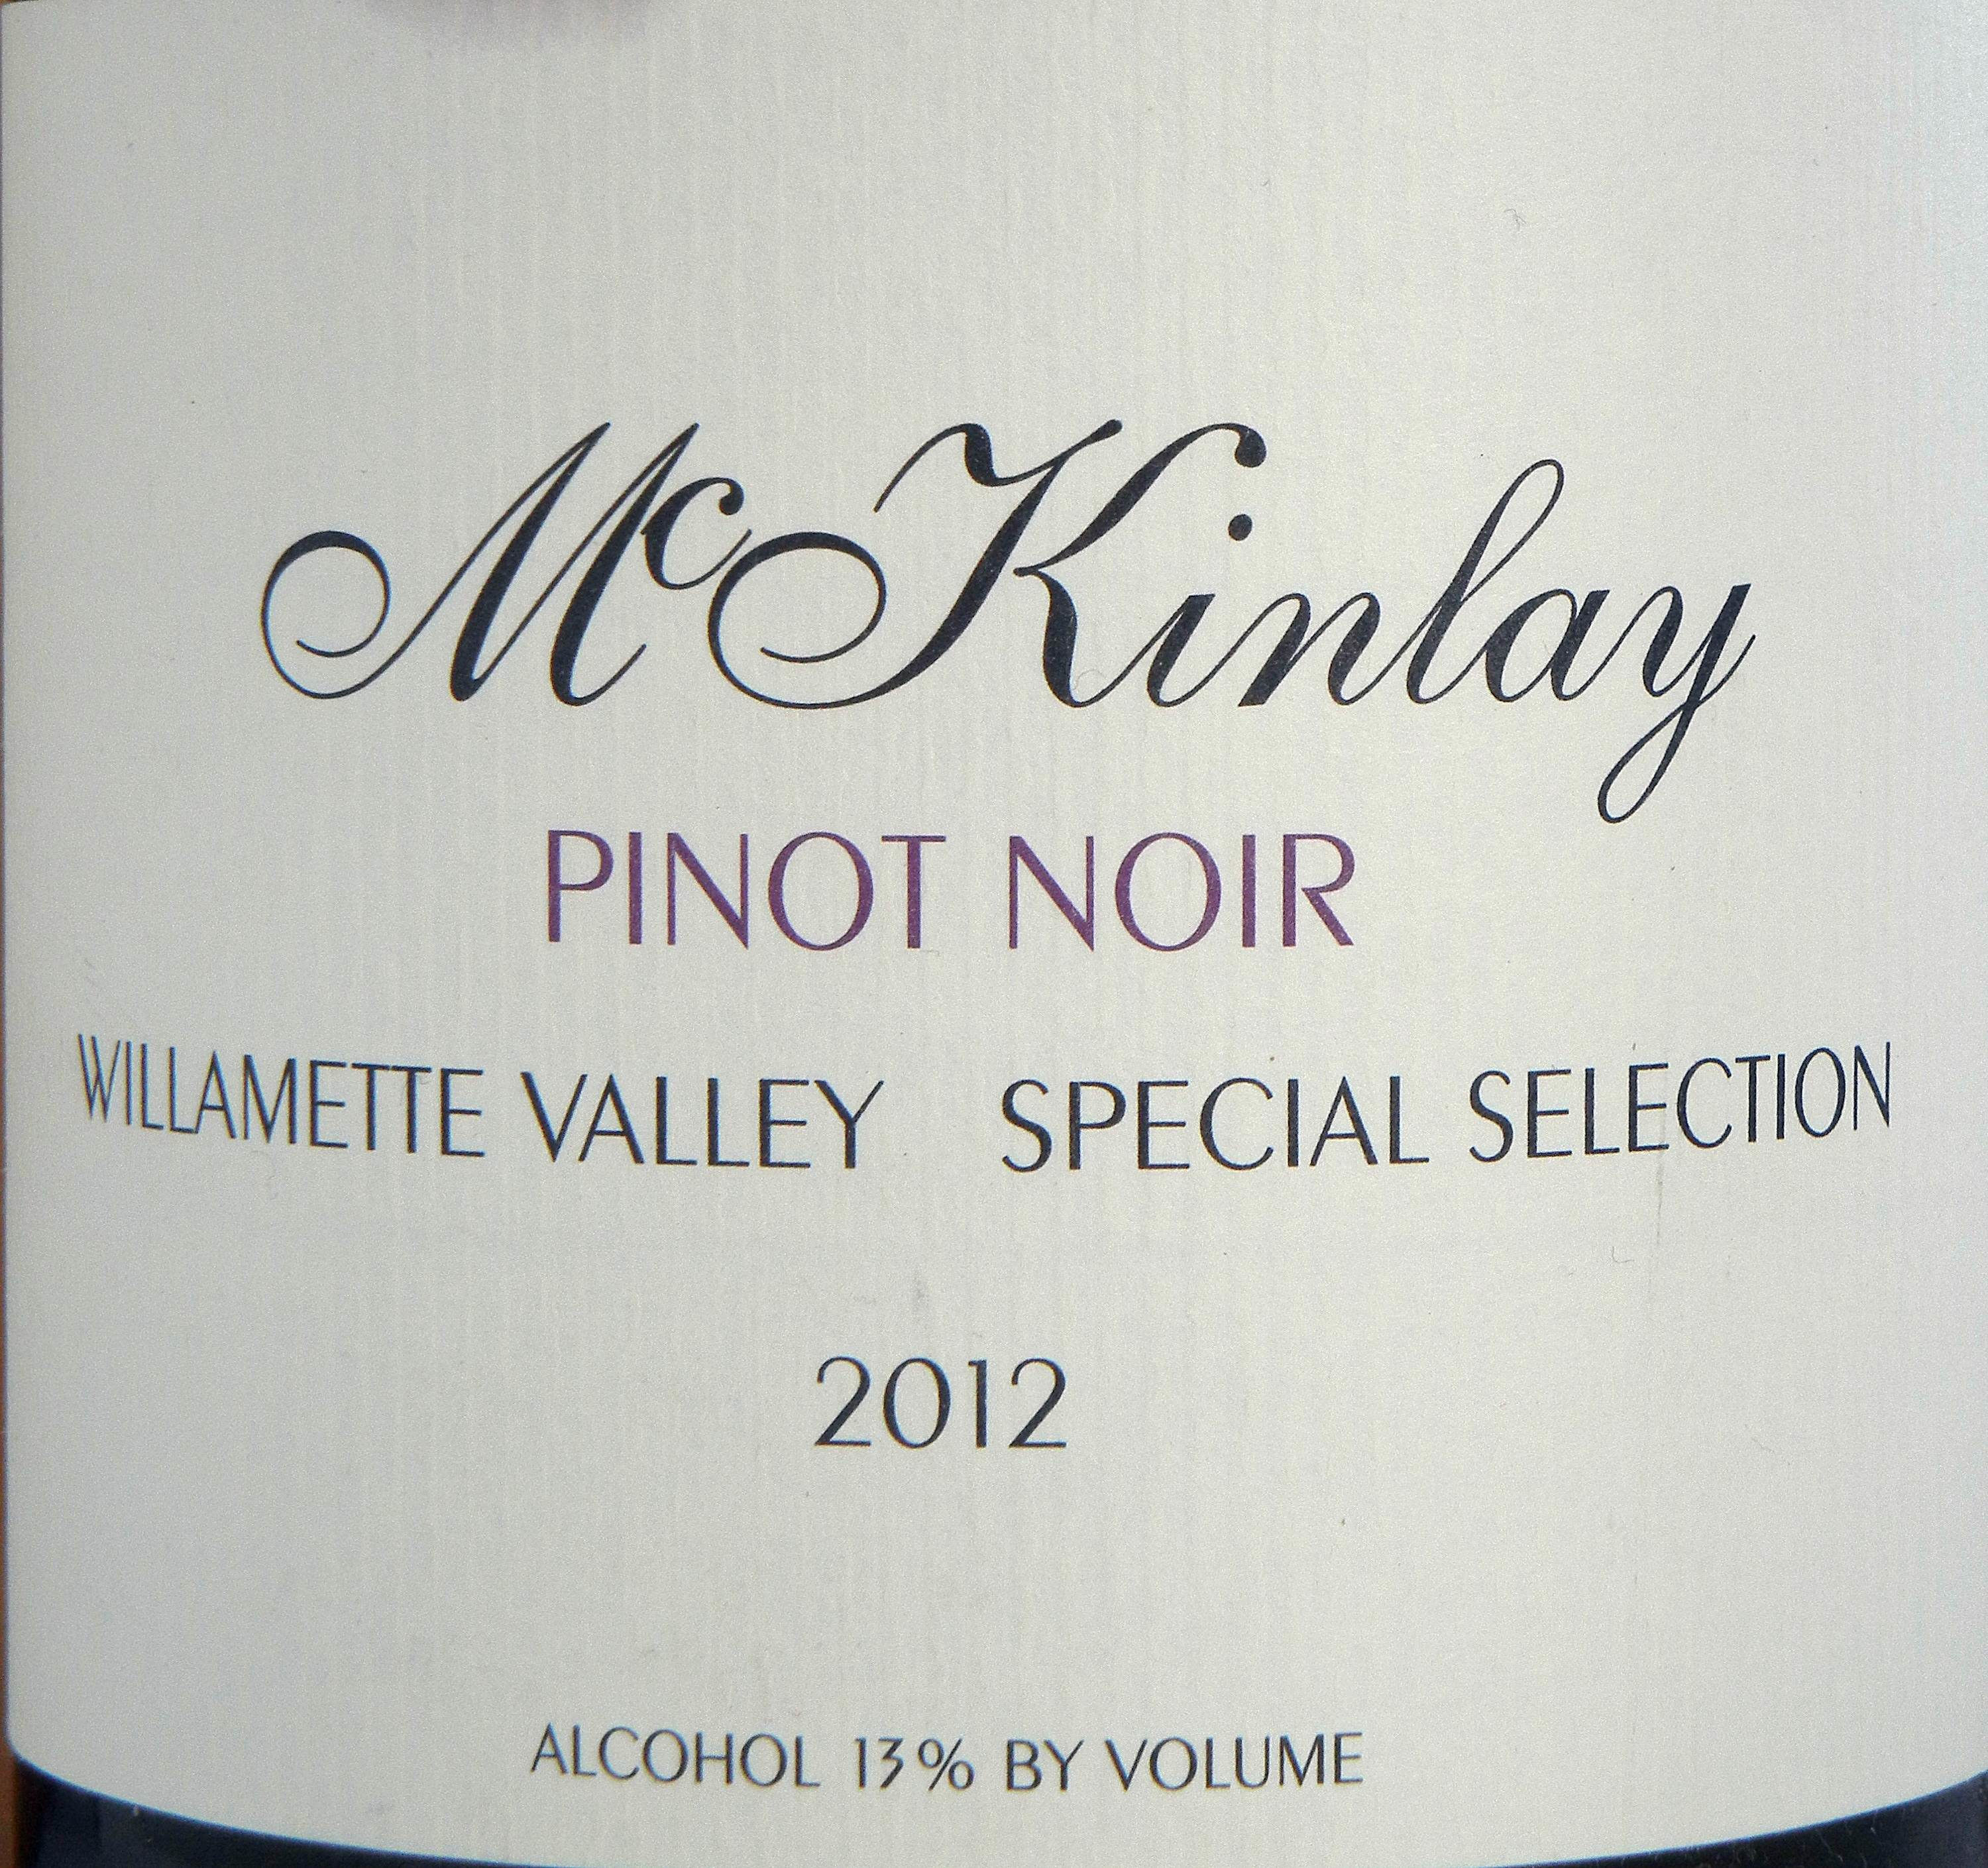 McKinlay Willamette Valley Pinot Noir 2012 Label - BC Pinot Noir Tasting Review 19